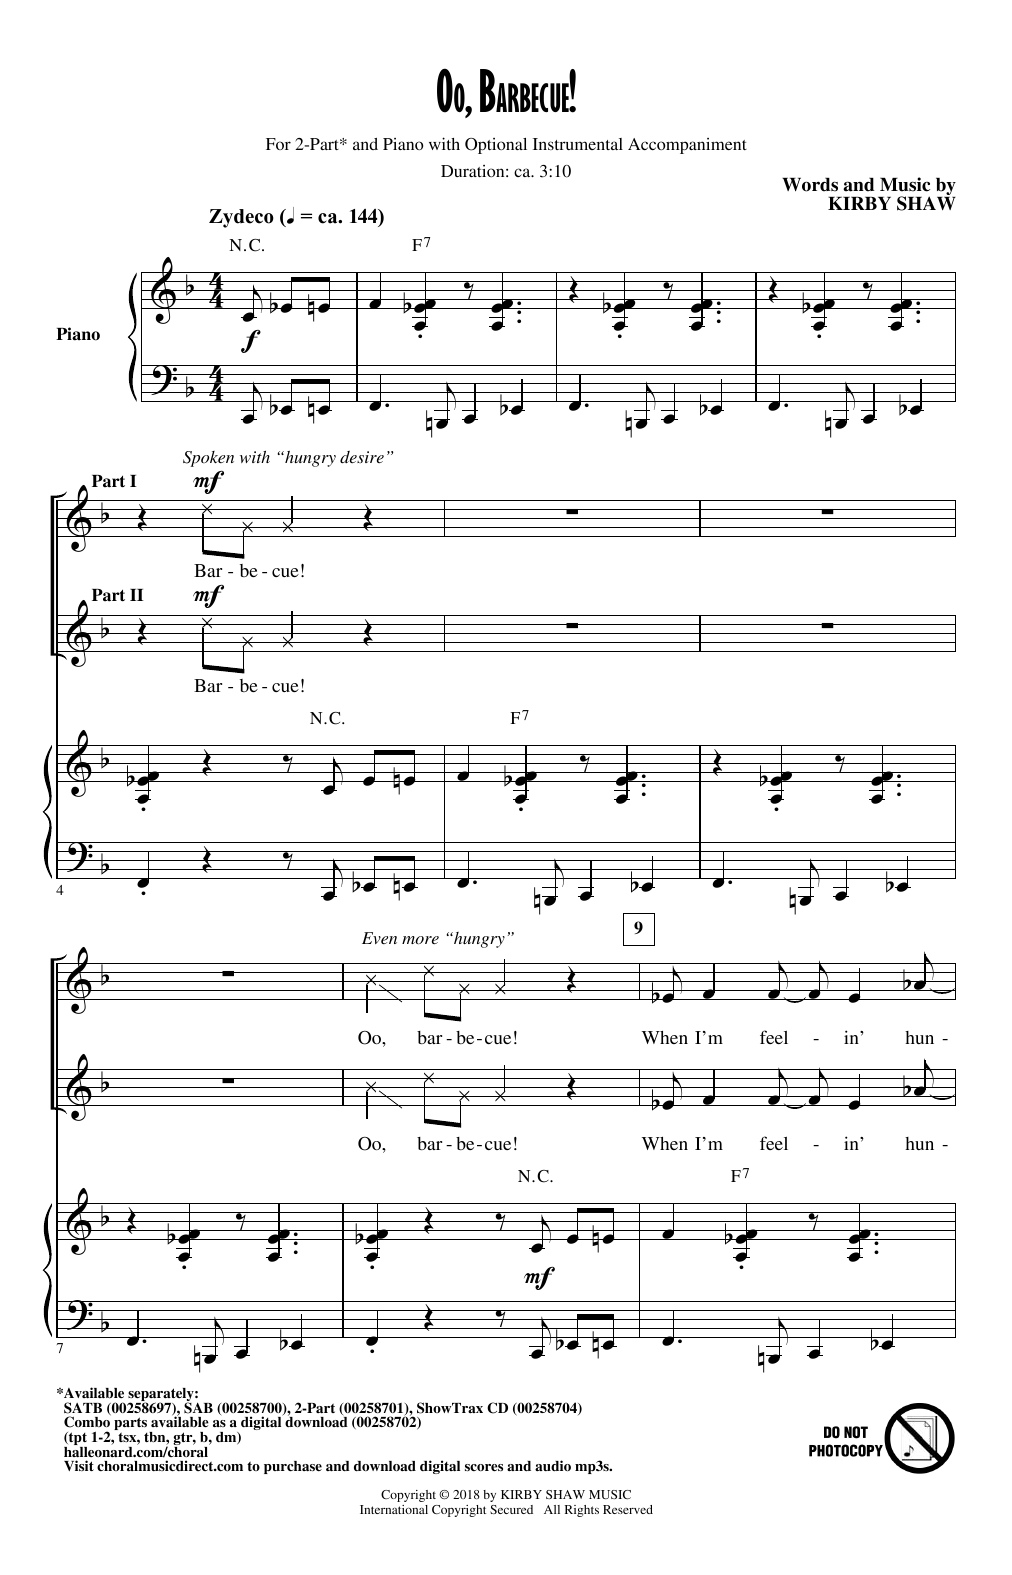 Oo, Barbecue! Sheet Music